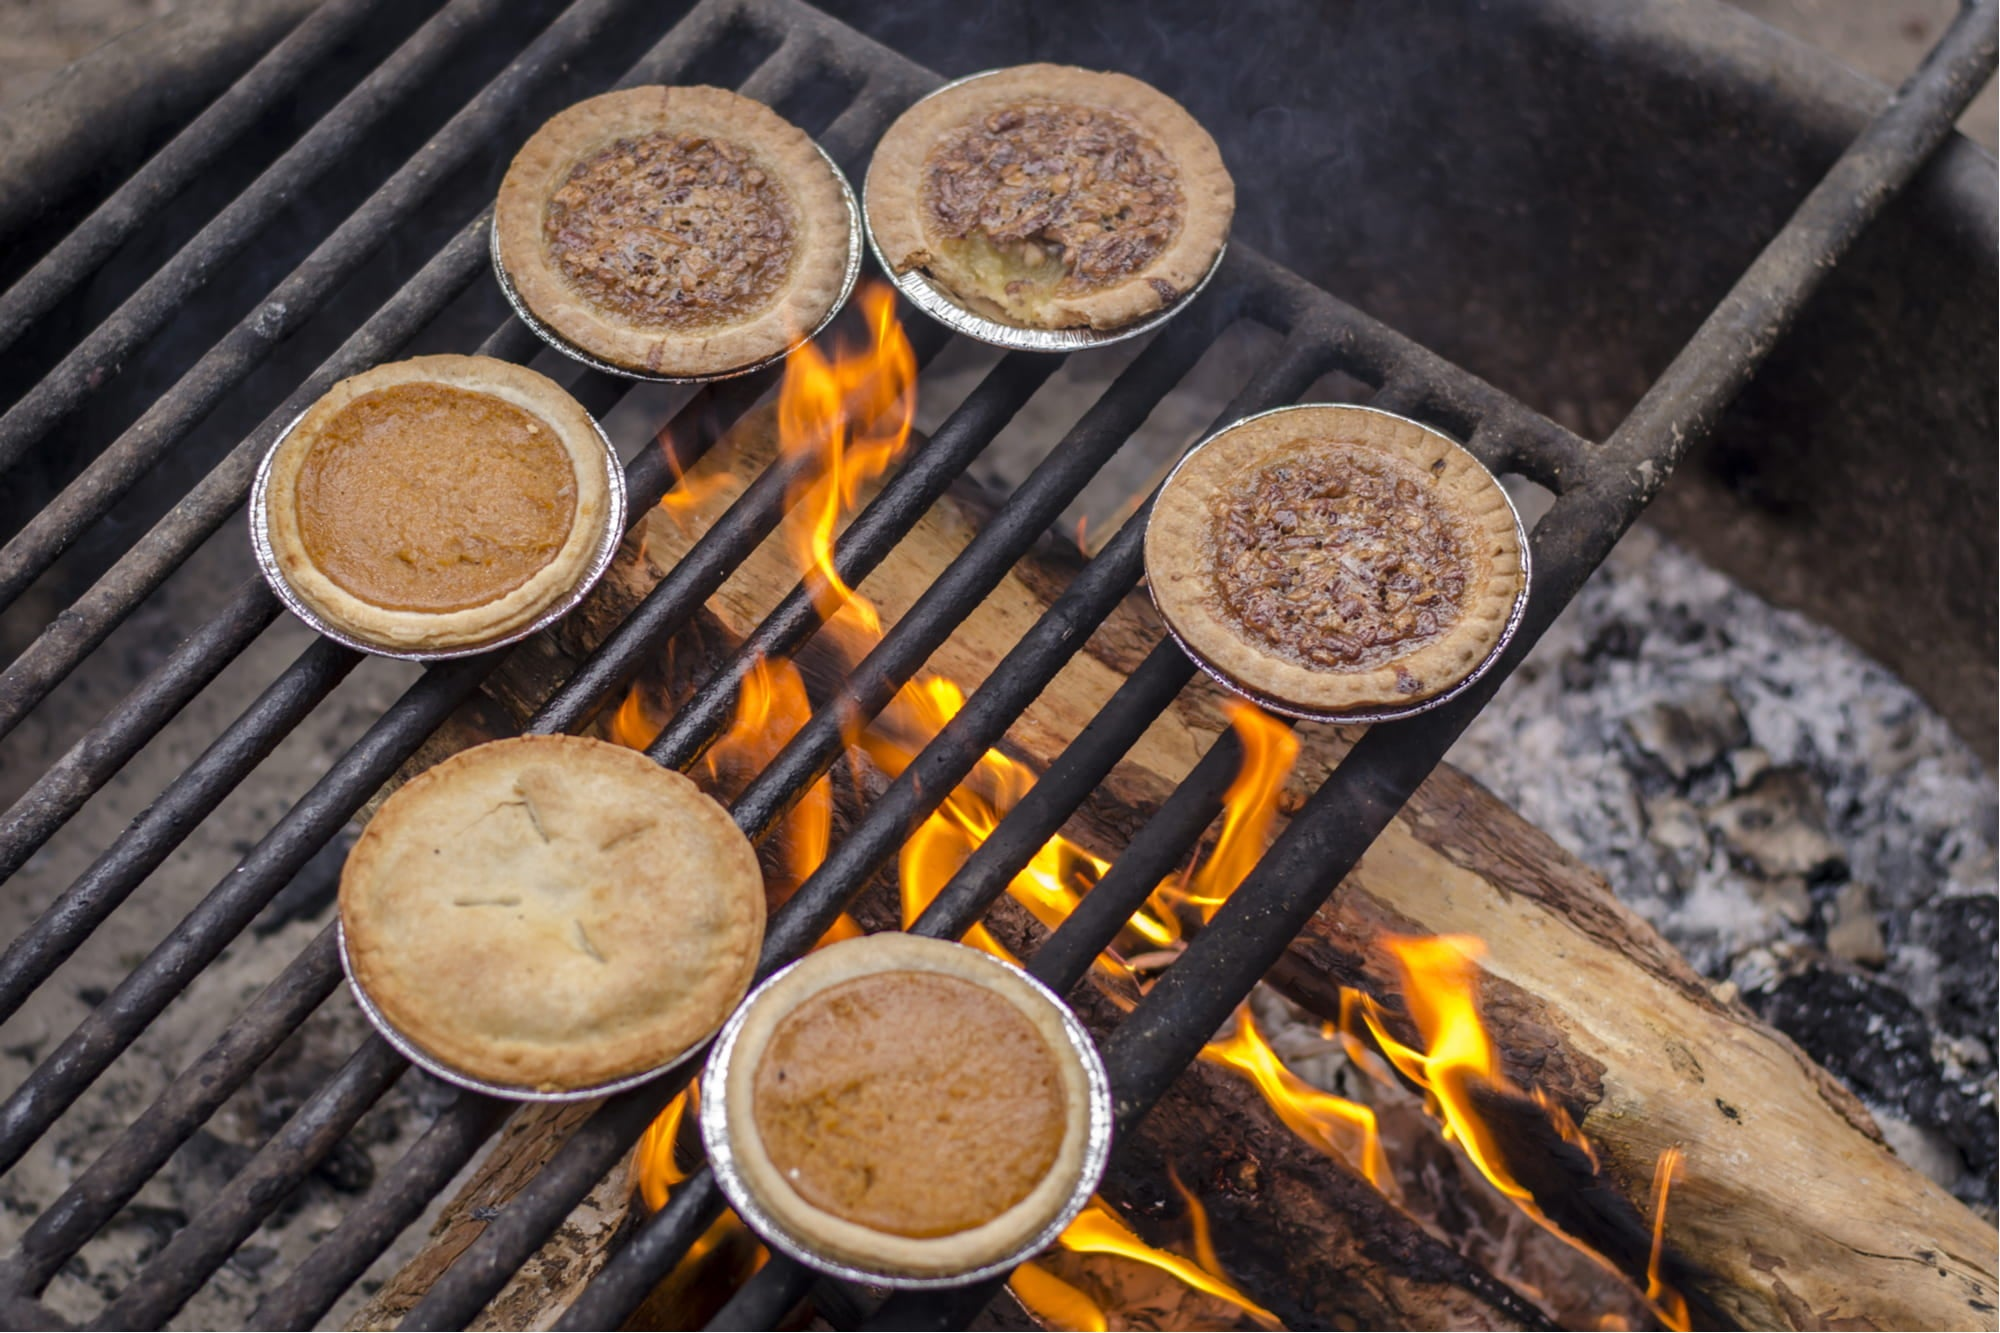 five pies on a grill over a campfire